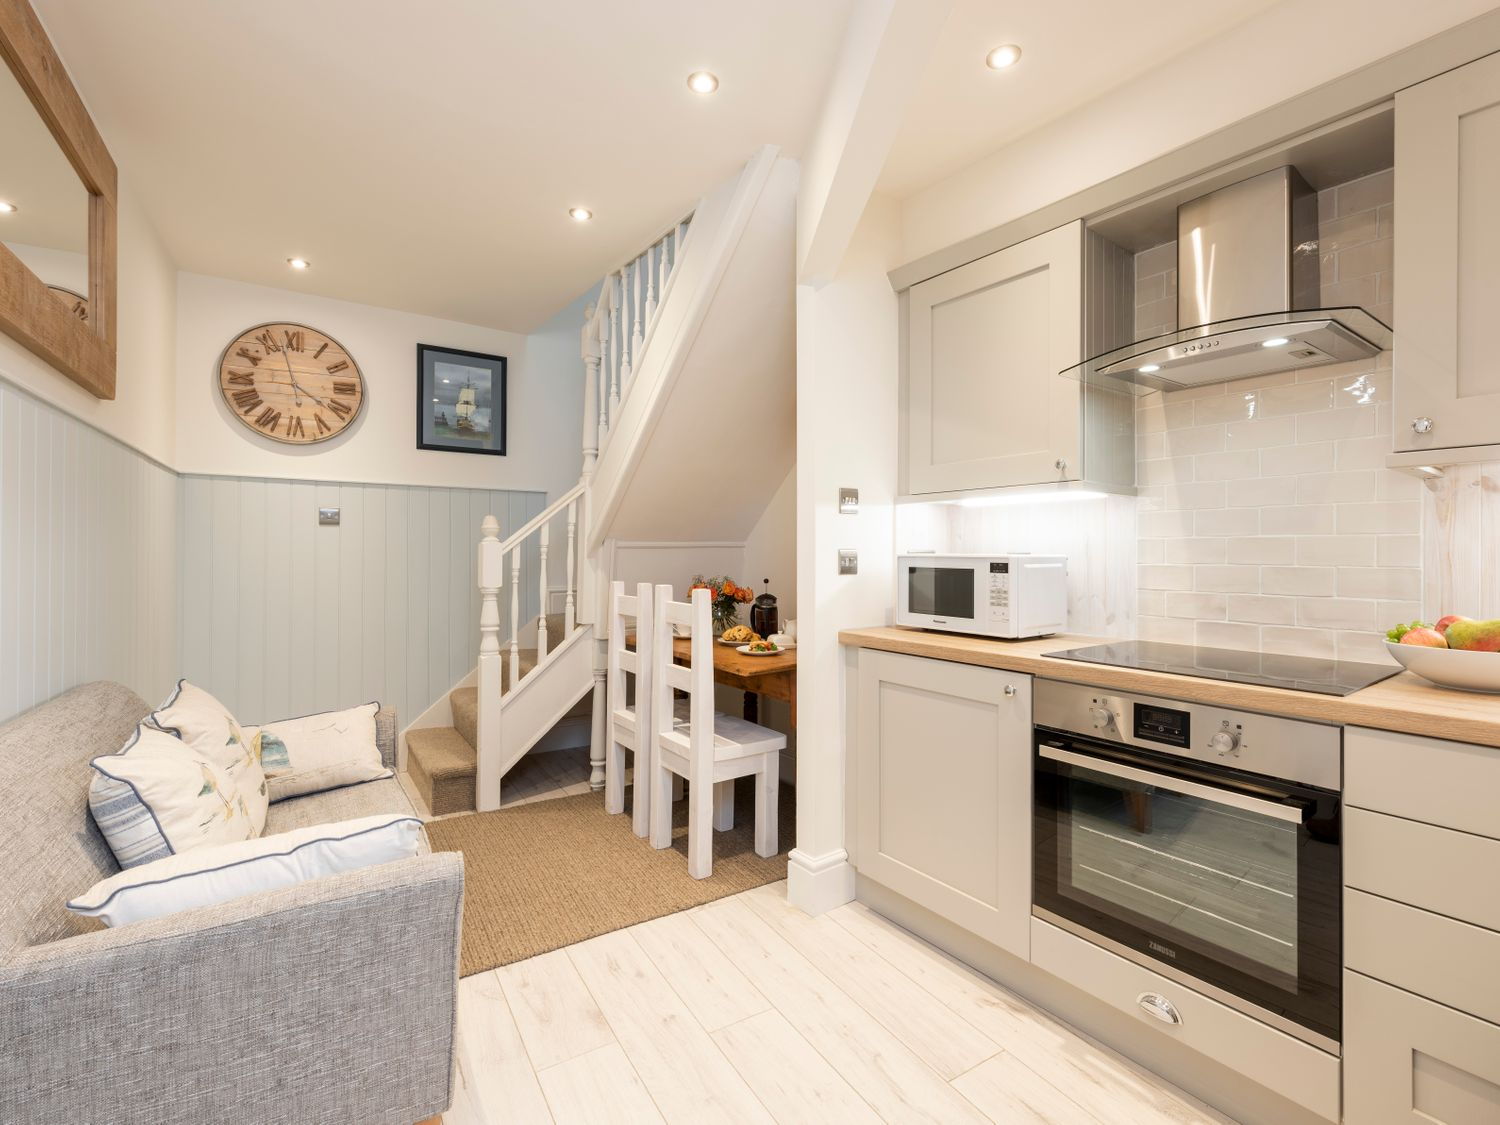 Little Gem in Whitby - sleeps 2 people